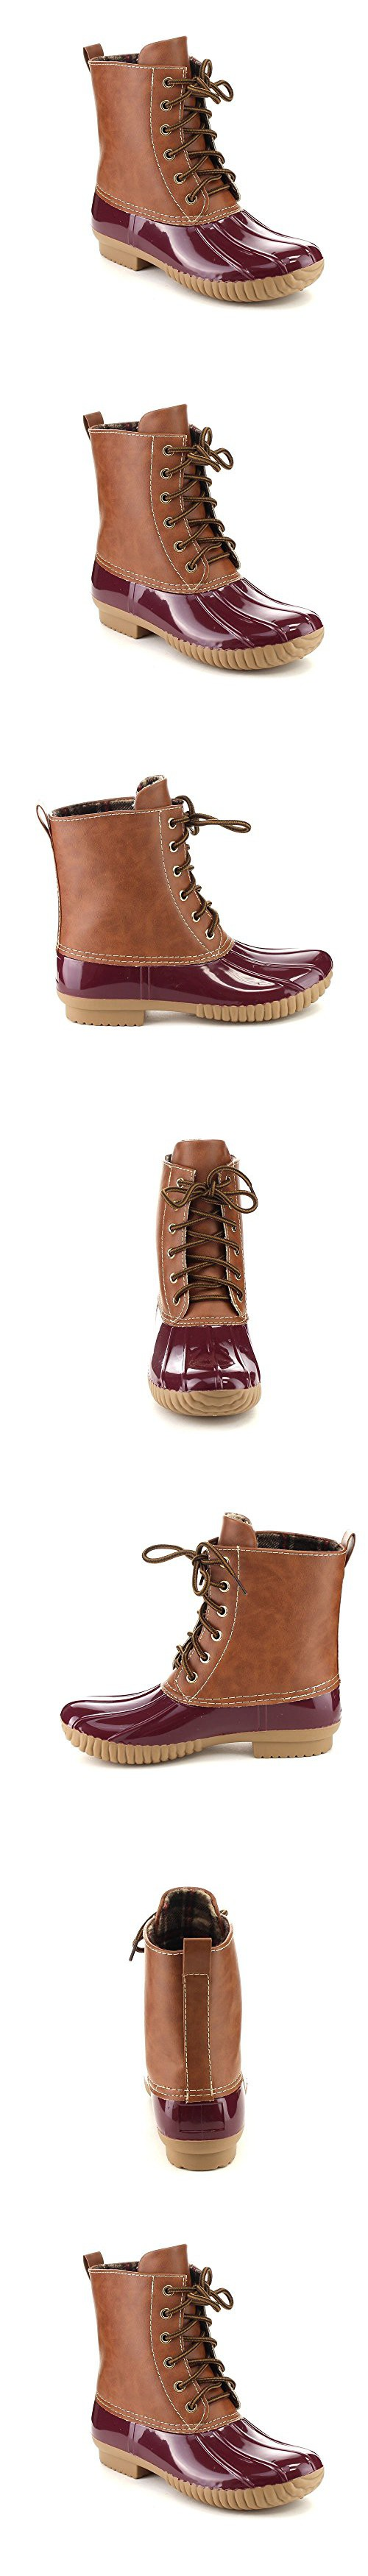 AXNY DYLAN Women's Lace Up Two Tone Calf Rain Duck Boots One Size Small, Color:BORDEAUX, Size:10